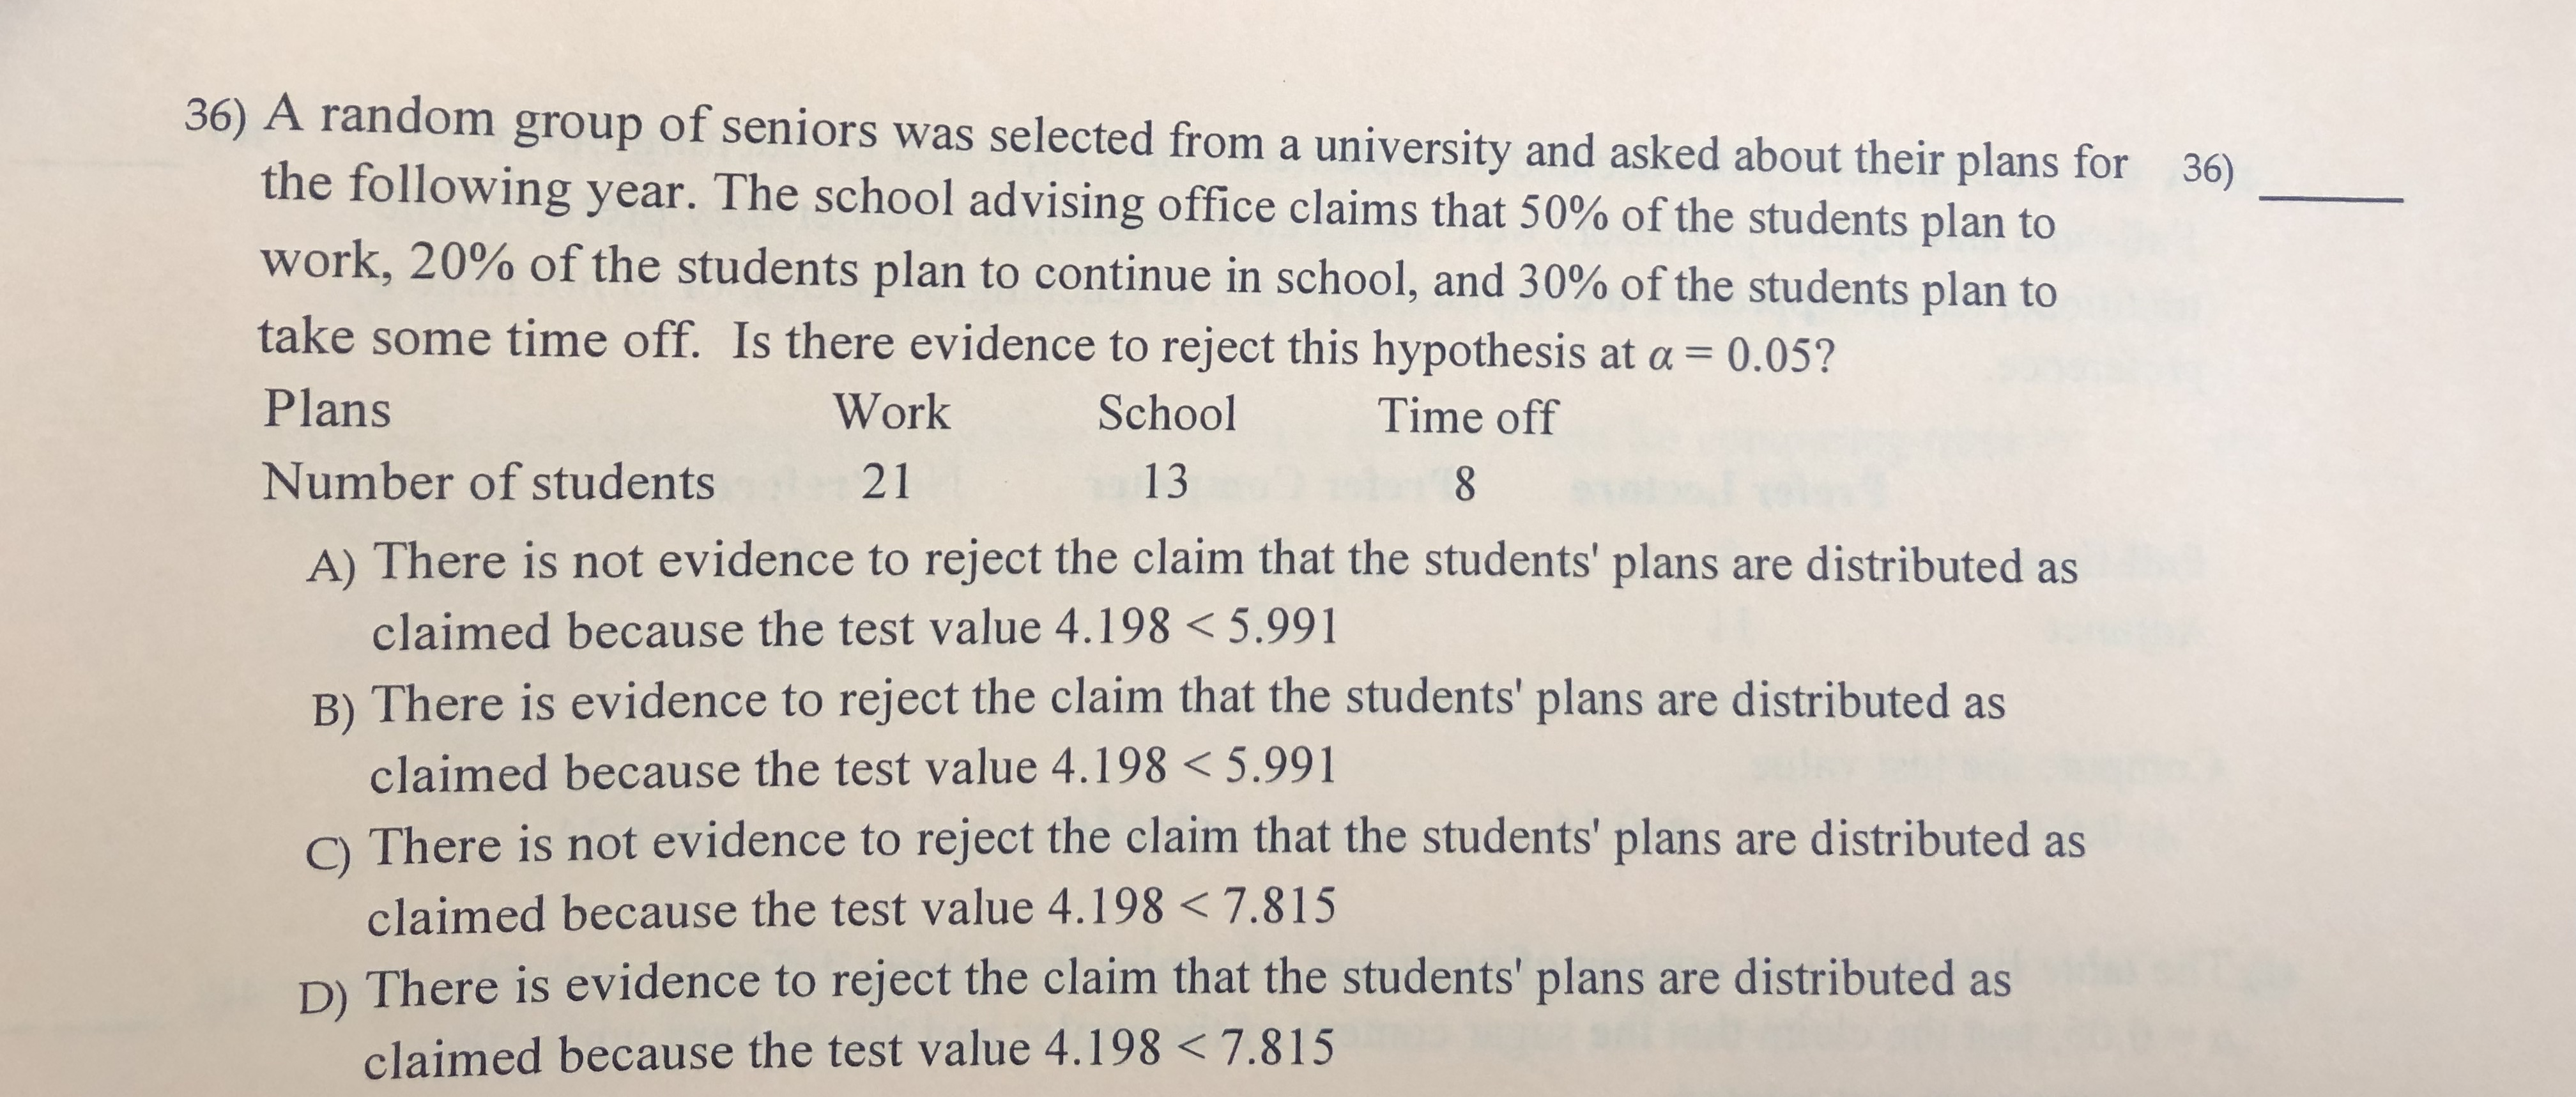 36) A random group of seniors was selected from a university and asked about their plans for the following year. The school advising office claims that 50% of the students plan to 36) work, 20% of the students plan to continue in school, and 30% of the students plan to take some time off. Is there evidence to reject this hypothesis at a 0.05? 1 Plans Work School Time off Number of students 21 13 A) There is not evidence to reject the claim that the students' plans are distributed as claimed because the test value 4.198 < 5.991 B) There is evidence to reject the claim that the students' plans are distributed as claimed because the test value 4.198 < 5.991 ) There is not evidence to reject the claim that the students' plans are distributed as claimed because the test value 4.198 < 7.815 D) There is evidence to reject the claim that the students' plans are distributed as claimed because the test value 4.198 < 7.815